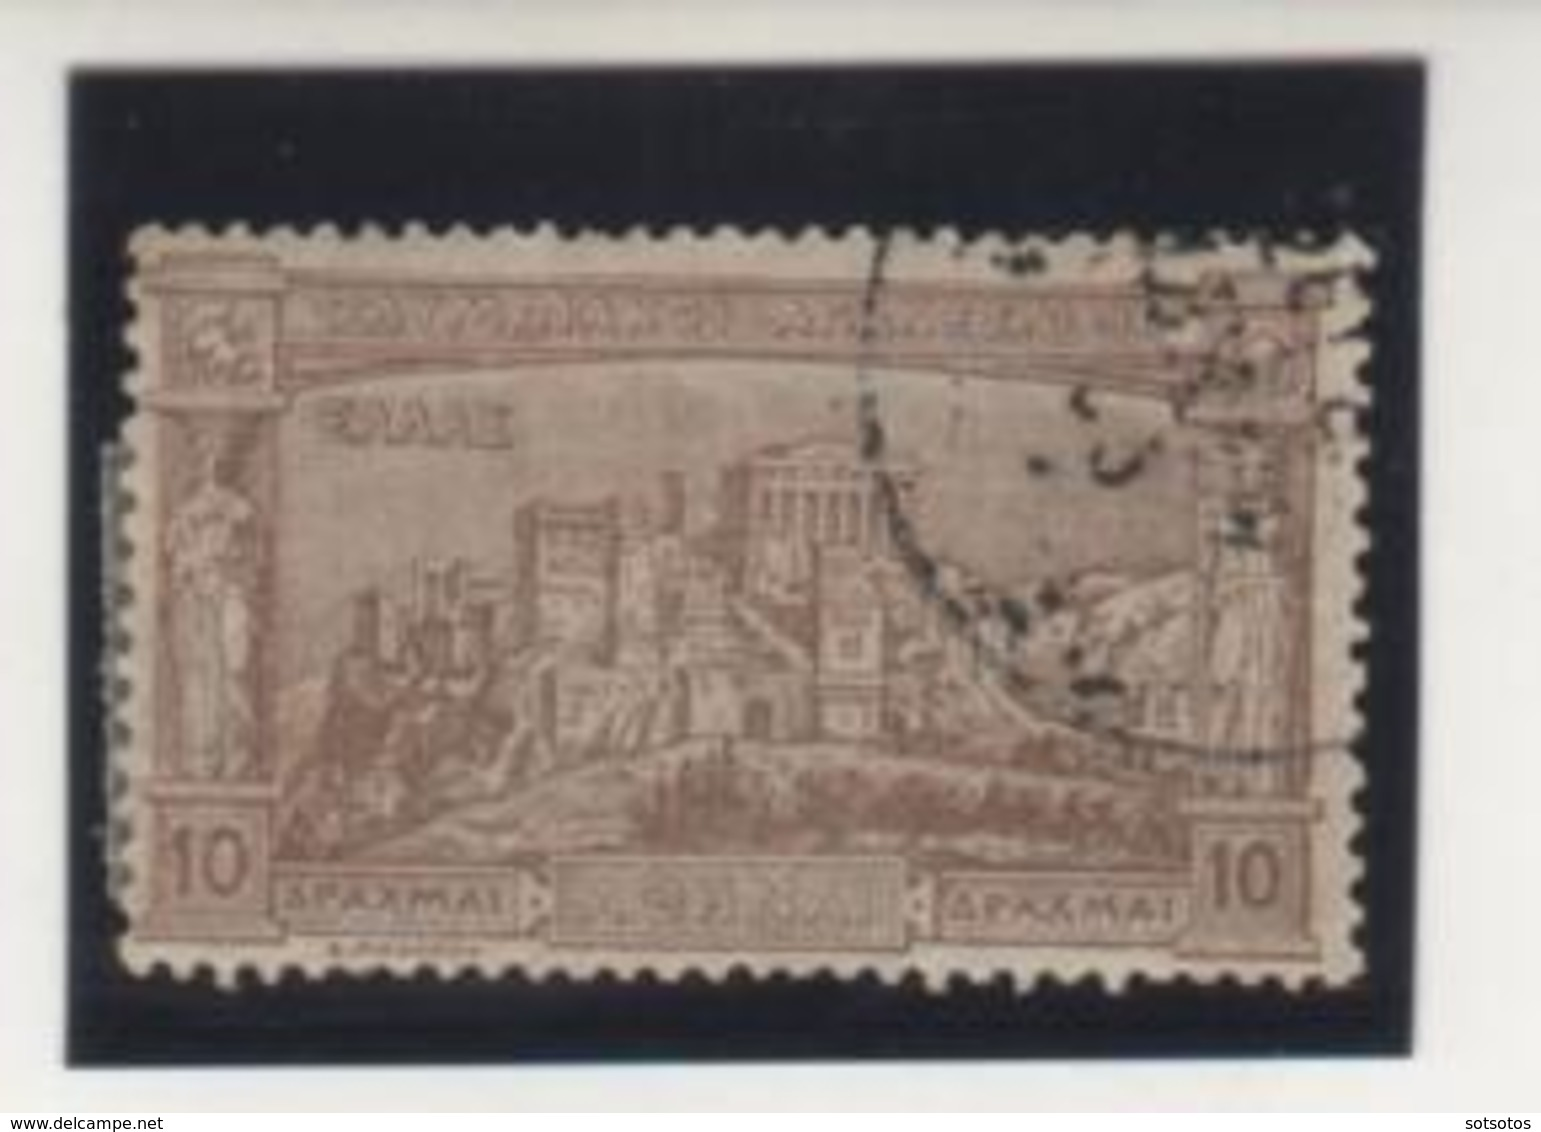 GREECE 1896 OLYMPIC GAMES: 10 Drc Genuine Stamp  (HELLAS #120 - 520€), USED - 1896 Premiers Jeux Olympiques